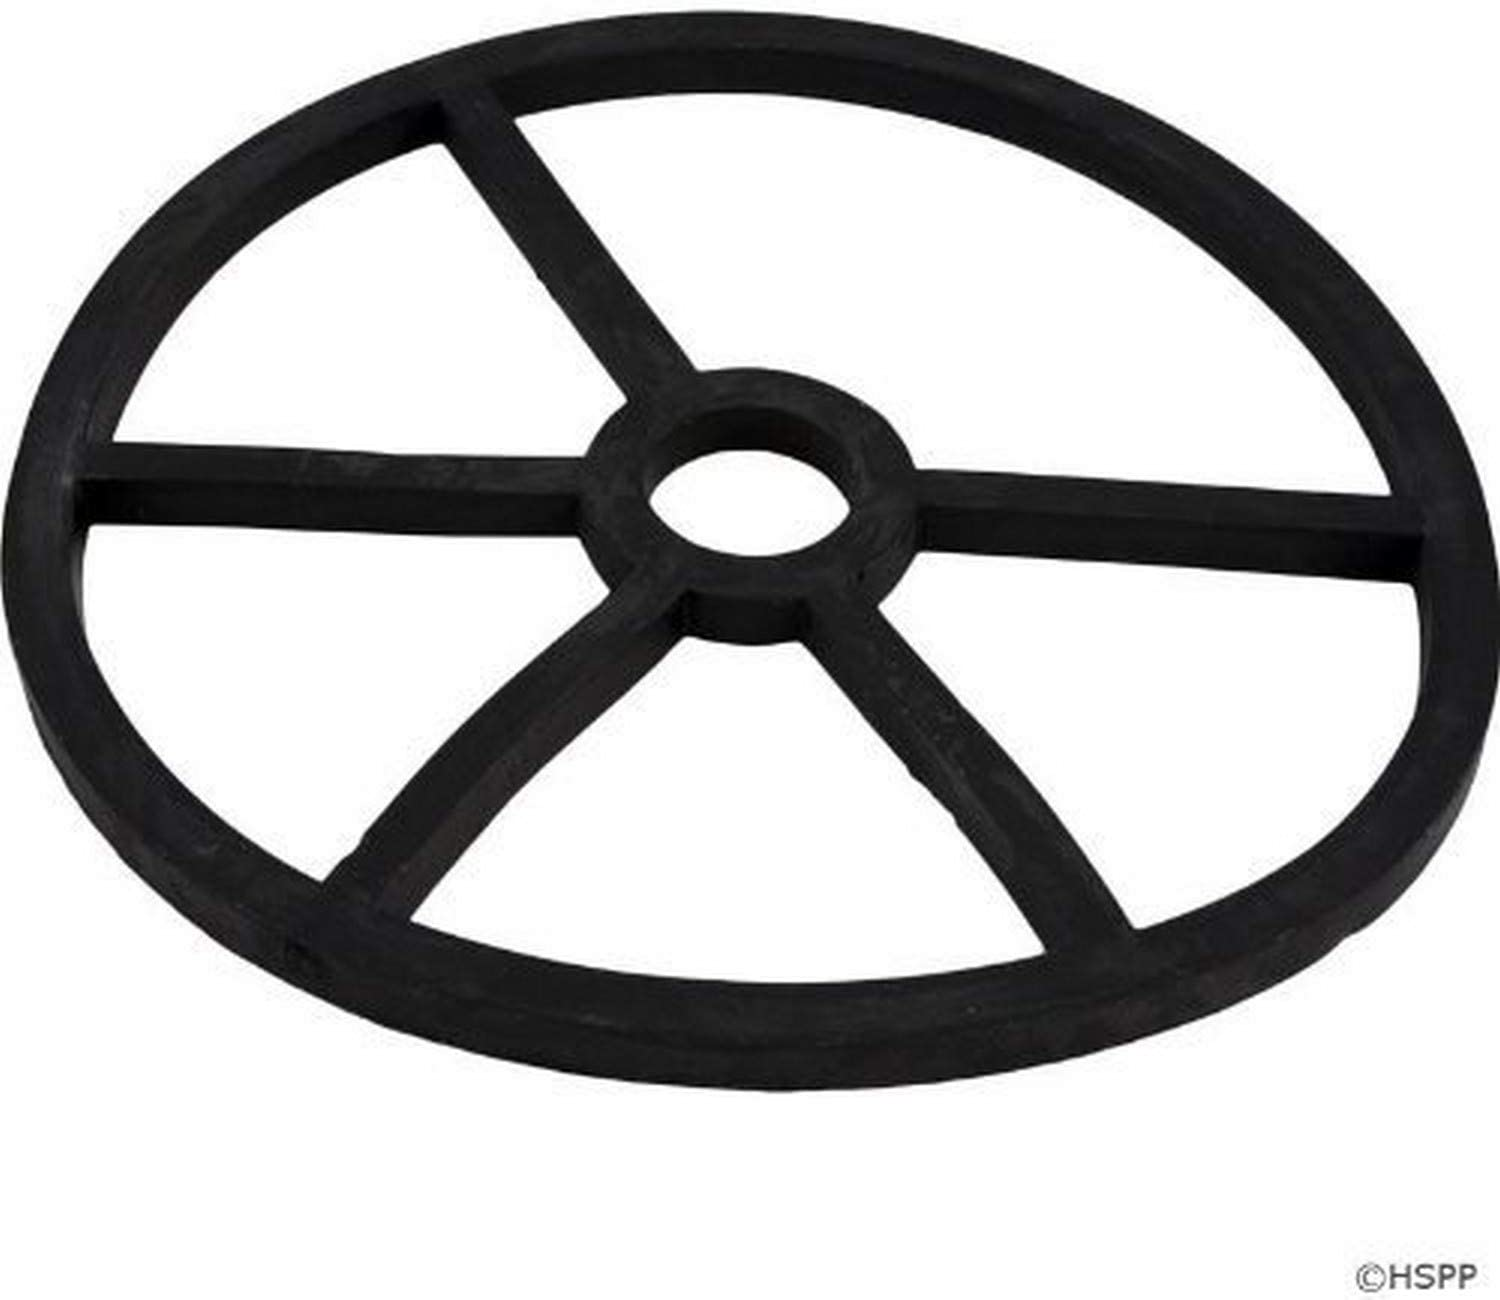 Hayward SPX0710XD Gasket Replacement for Hayward Multiport and Sand Filter Valves